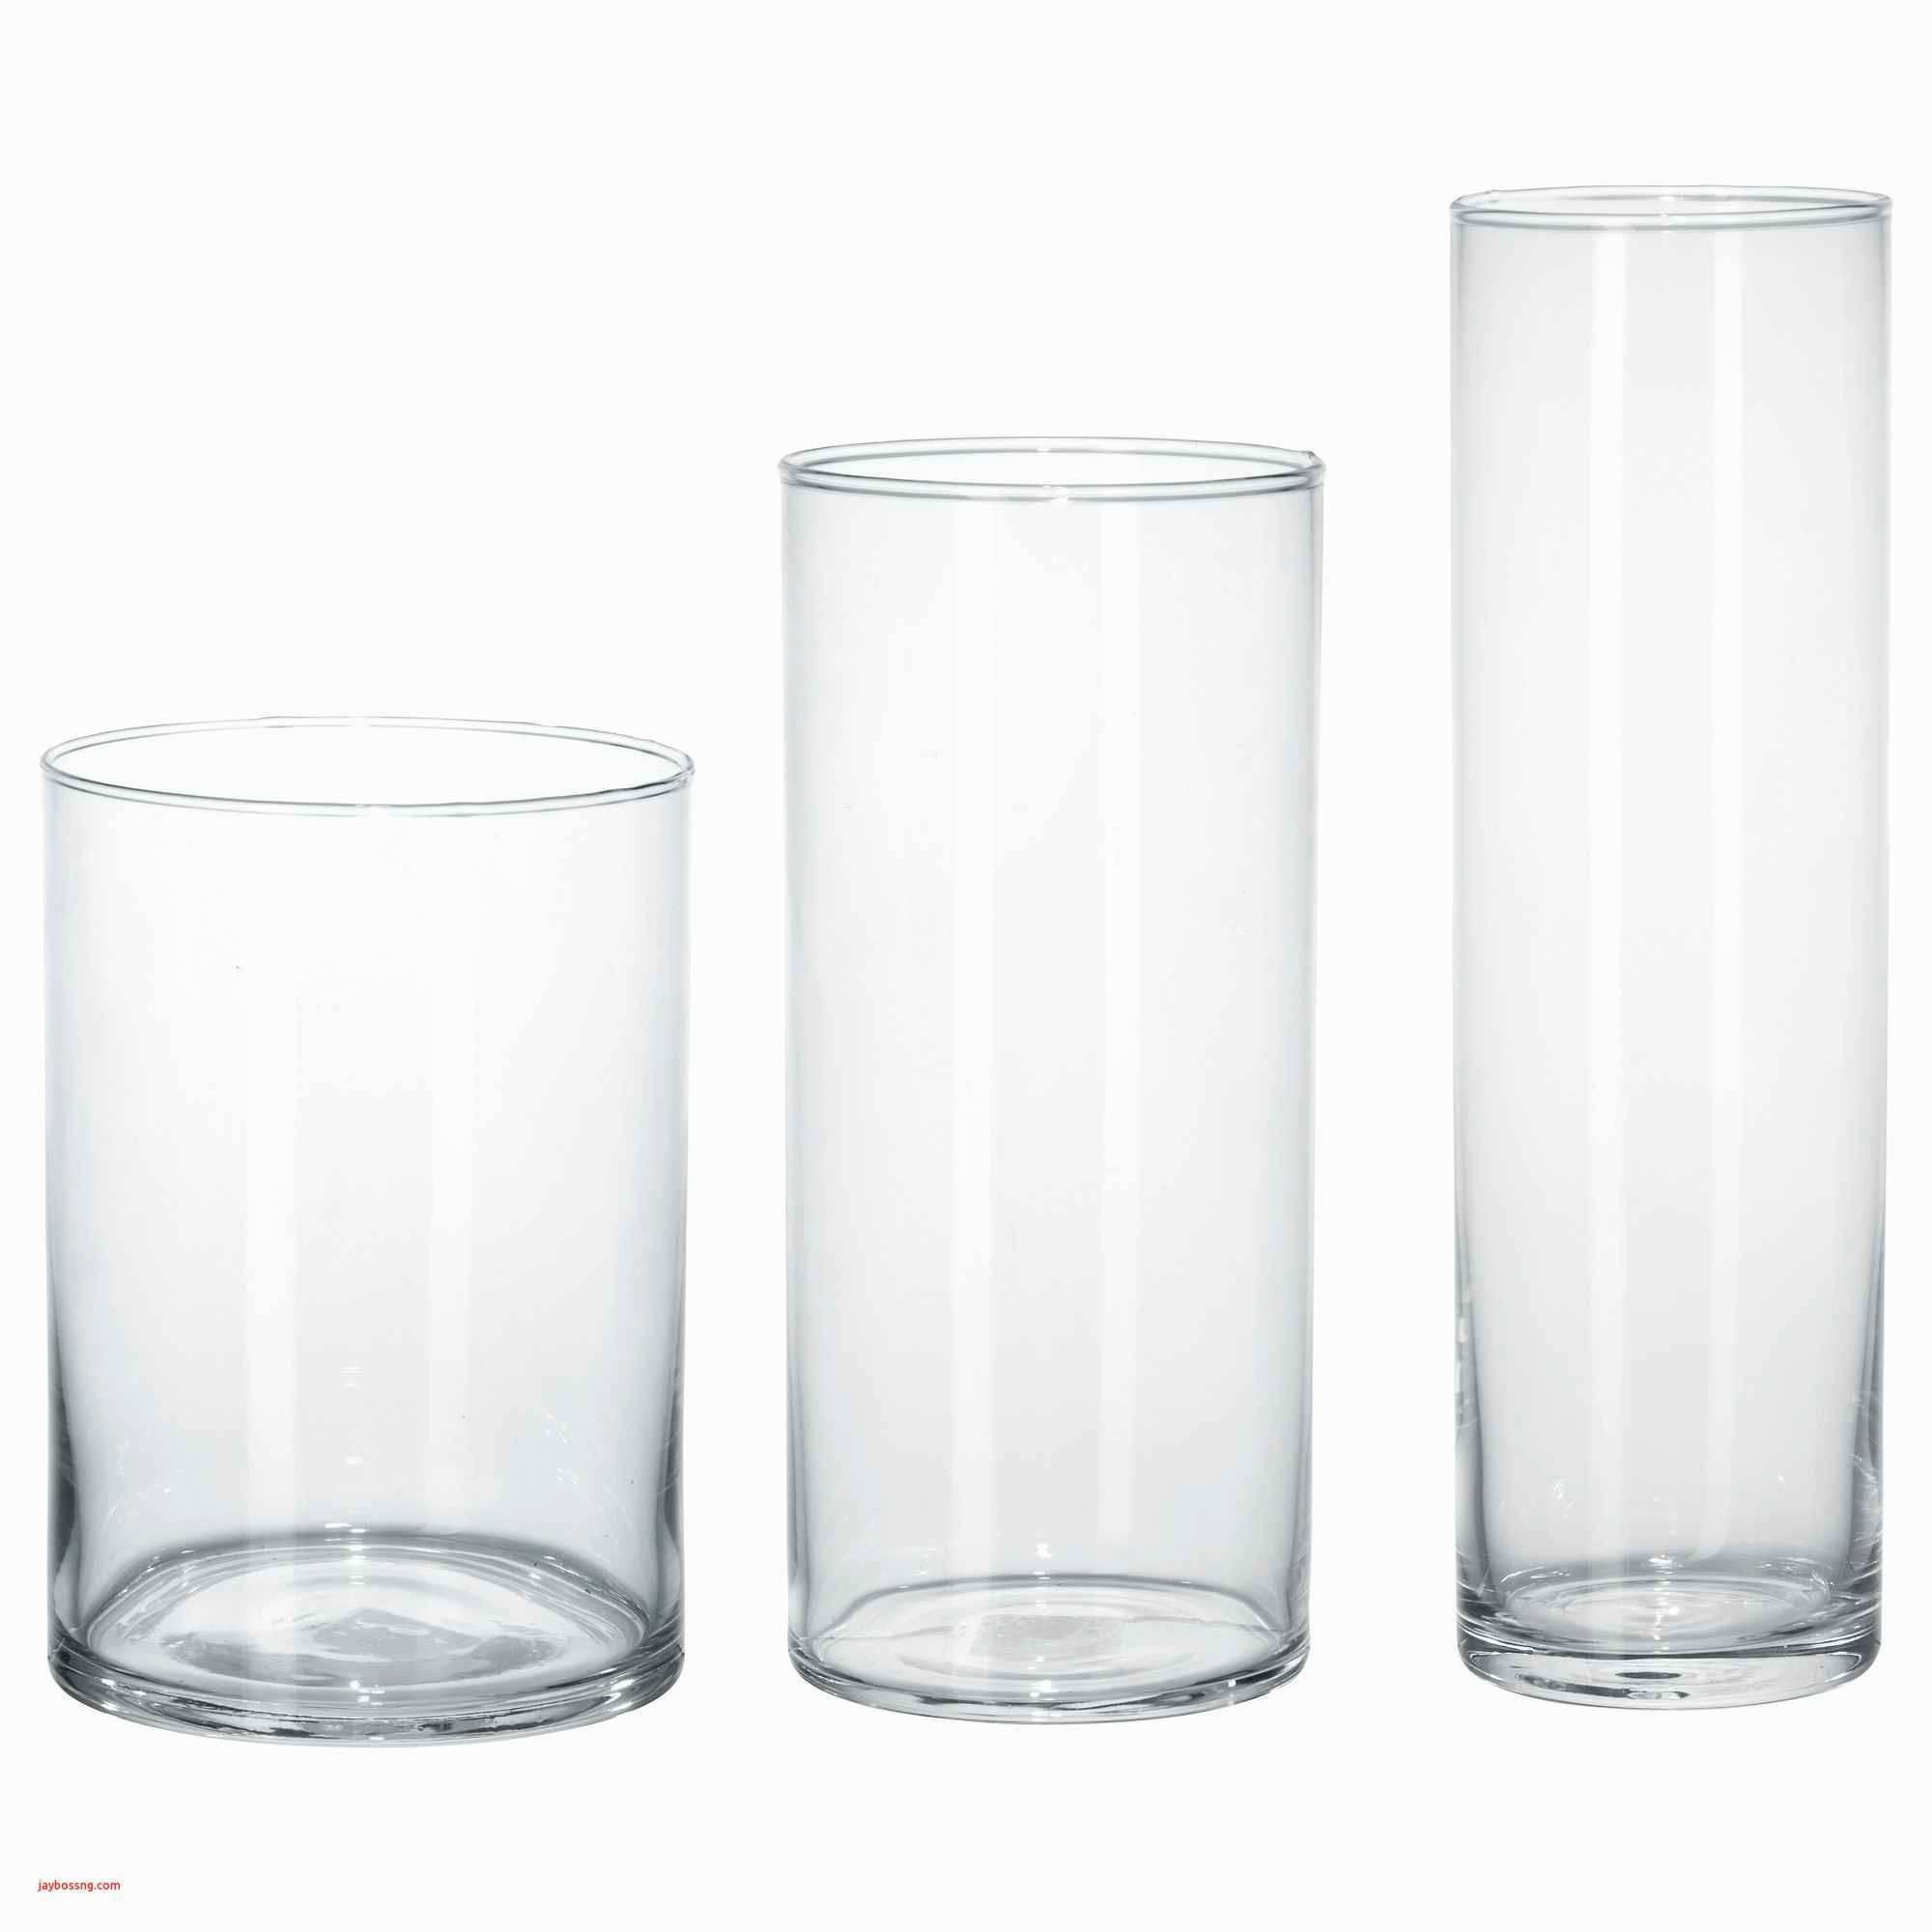 24 inch vases cheap of 24 tall vases for sale the weekly world intended for 35 magnificent pedestal hurricane candle holders